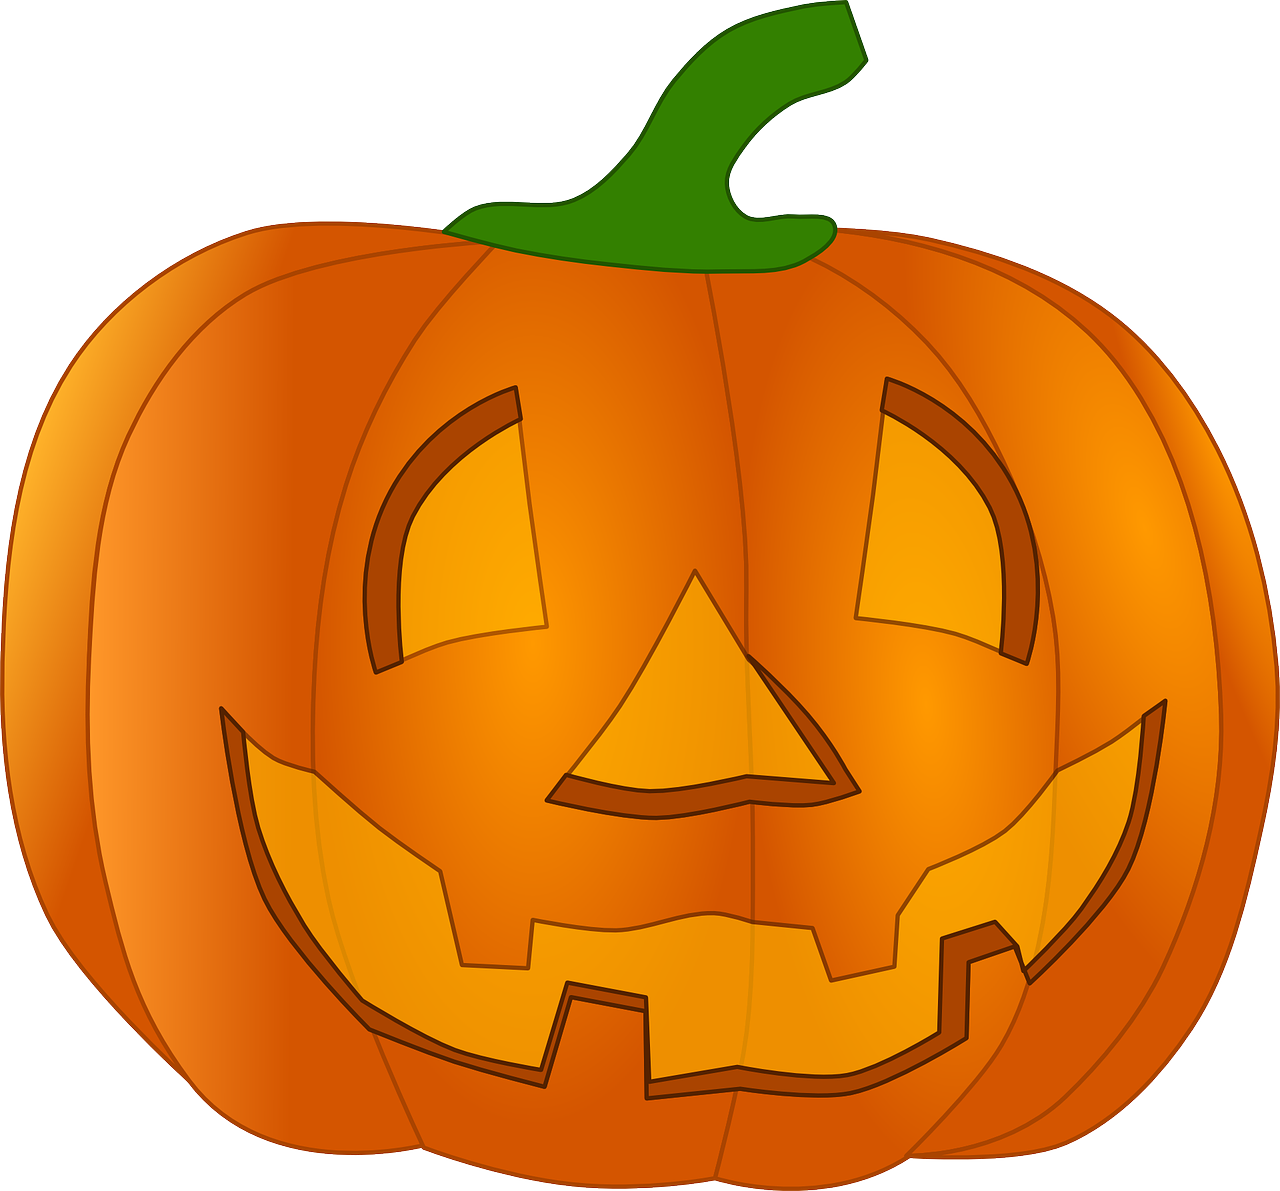 Halloween 2019 Pompoen.What Should We Really Worry About For Halloween American